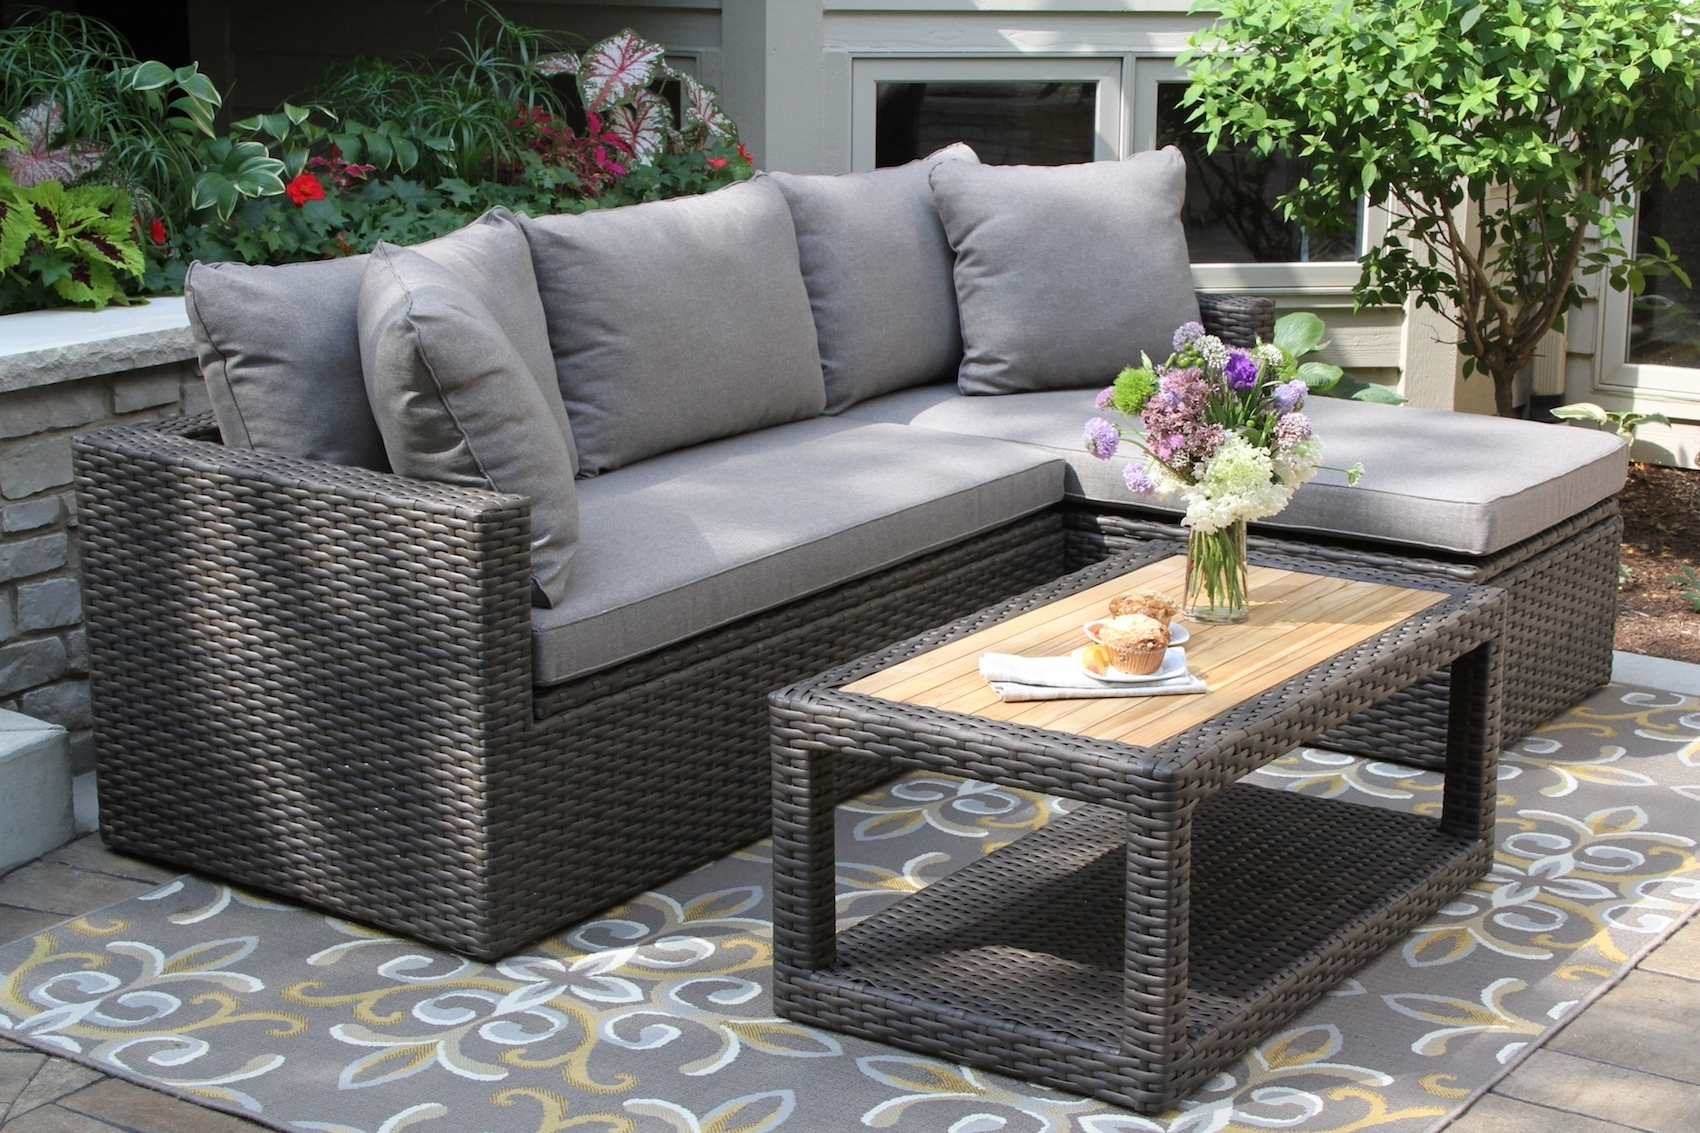 Teak And Eucalyptus Wood Outdoor Furniture, Torches, Planters Within Well Known Patio Conversation Sets With Storage (View 11 of 20)